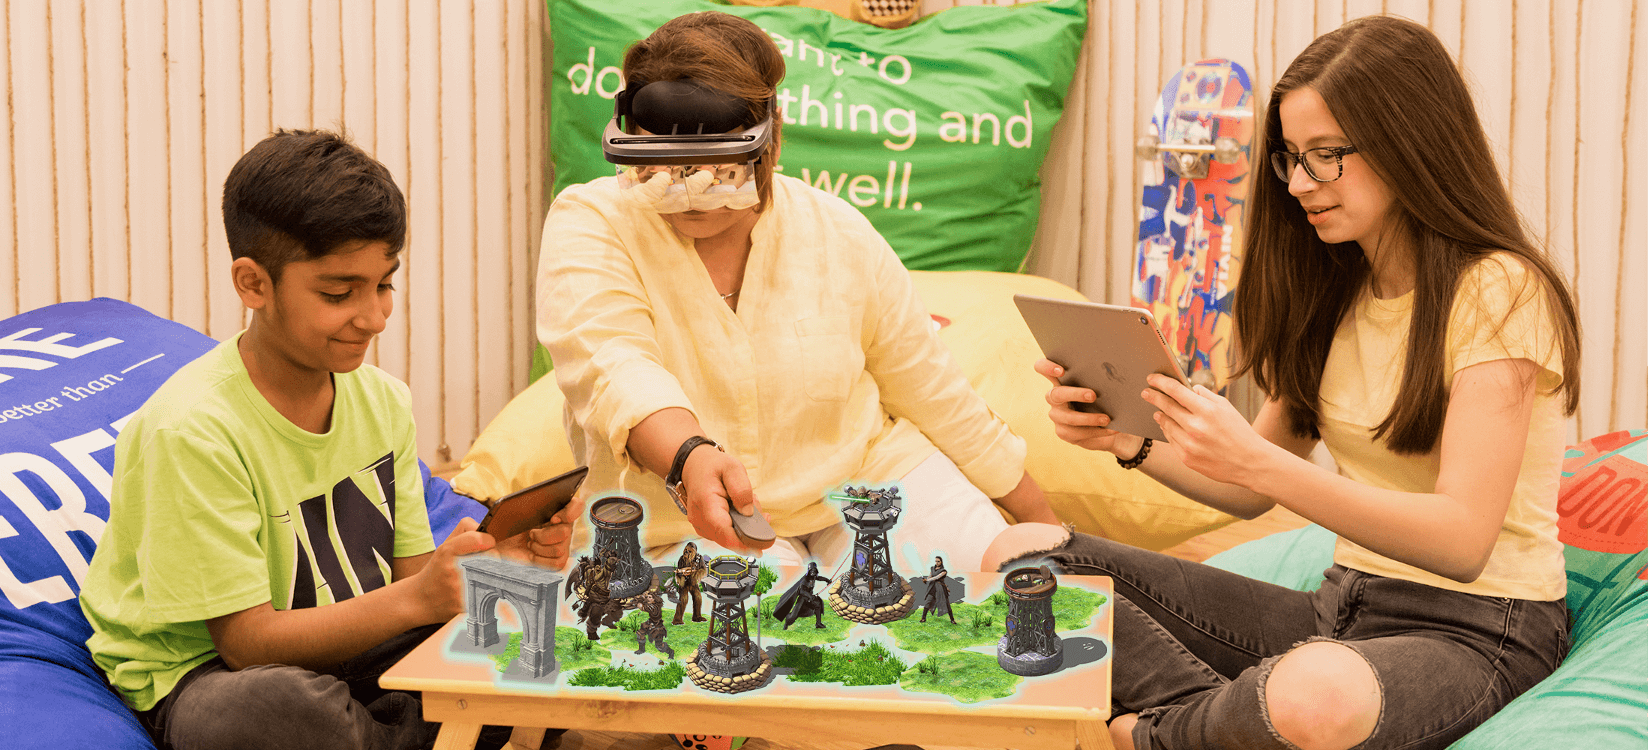 Collaborate and Play Games in Augmented Reality Using Holoboard Mixed Reality Headset